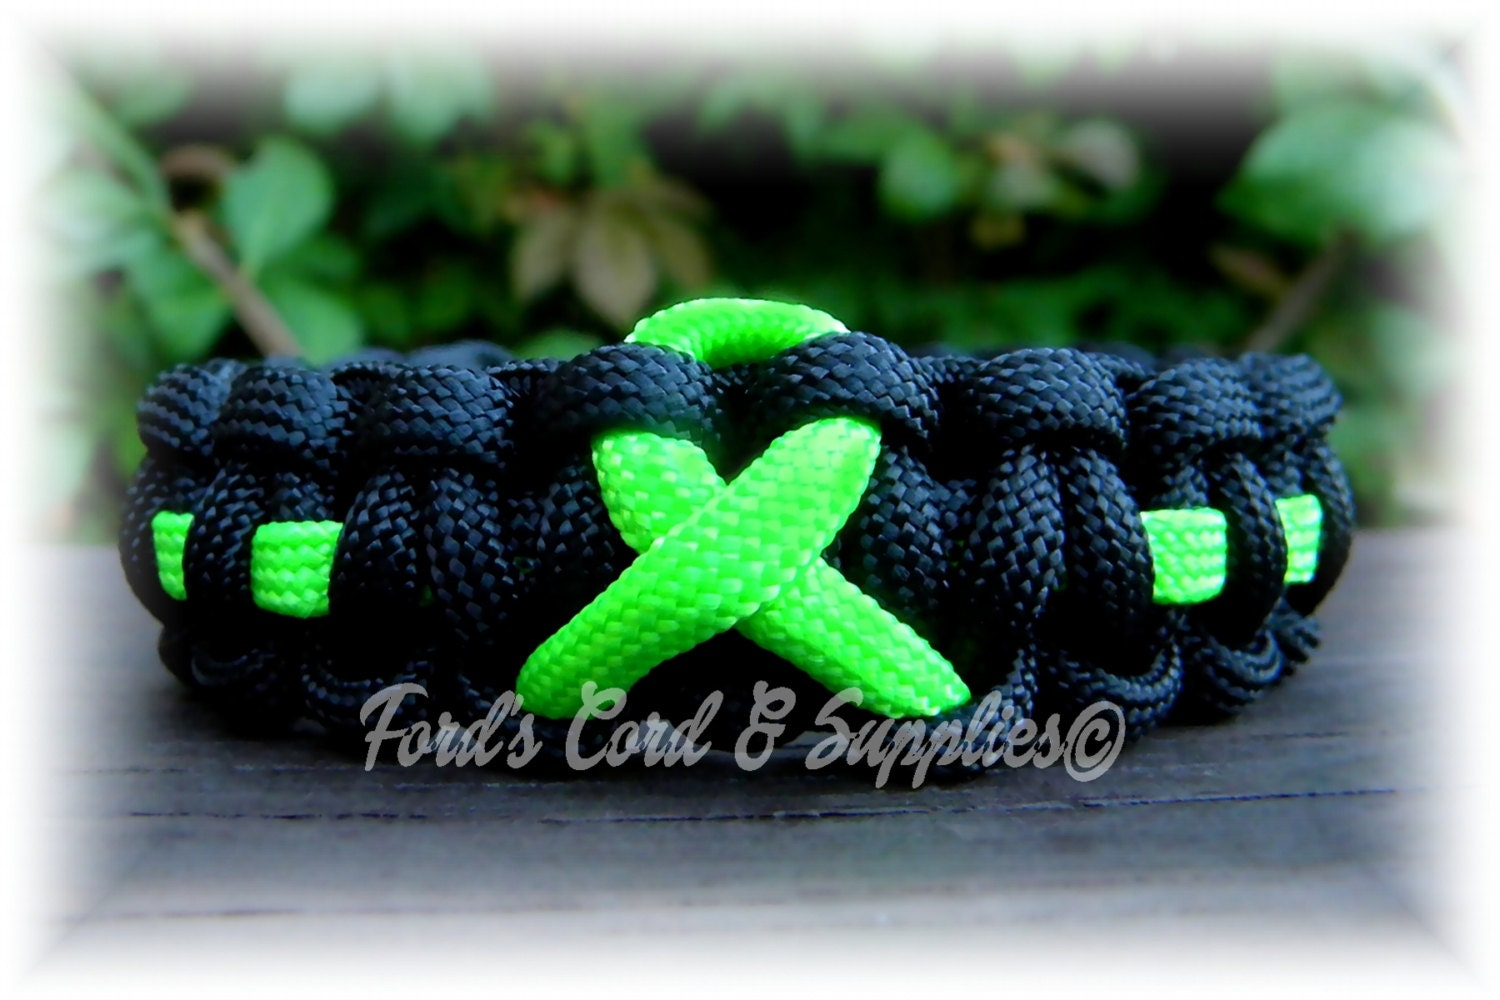 awareness silicone mental awarenessdepot bracelet com health mentalhealthawarenessbracelet